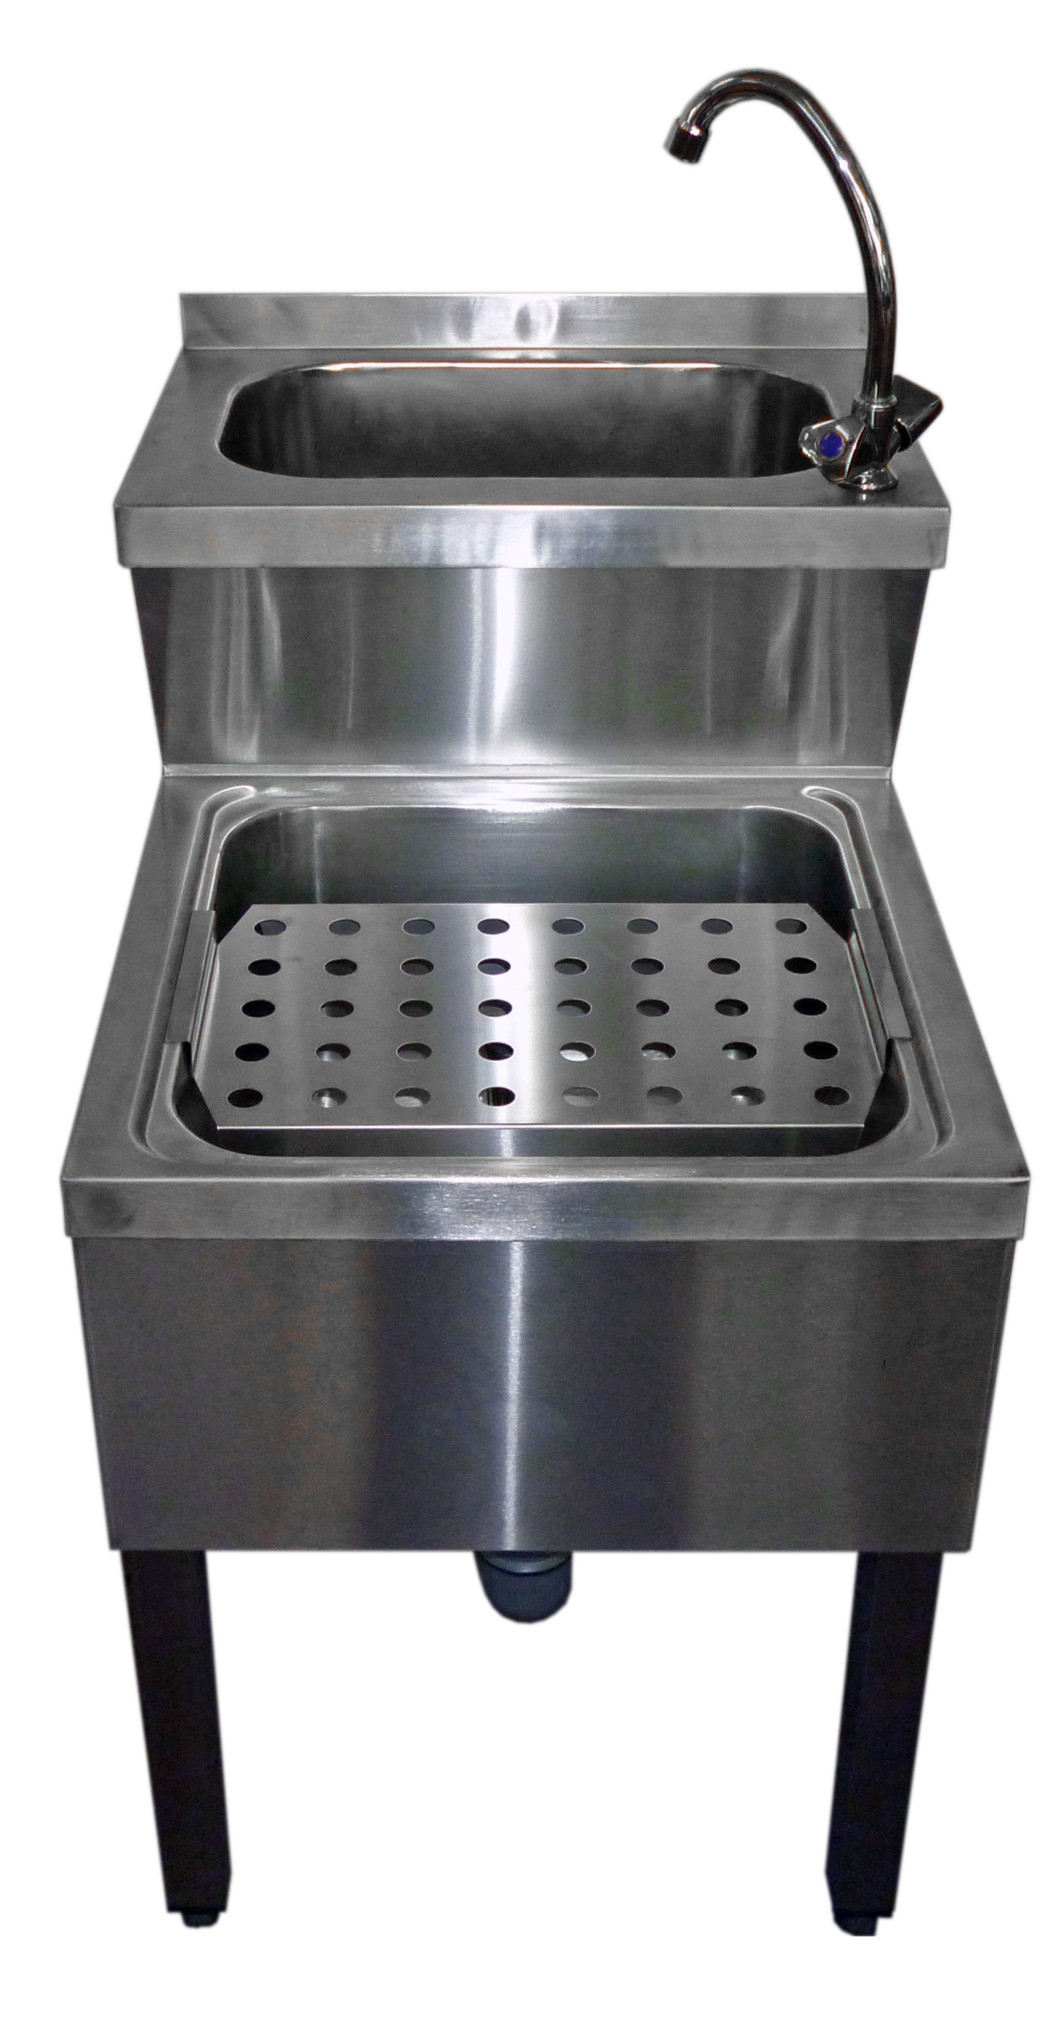 Janitorial Sink Unit Hand Basin Sink Combo Sinks